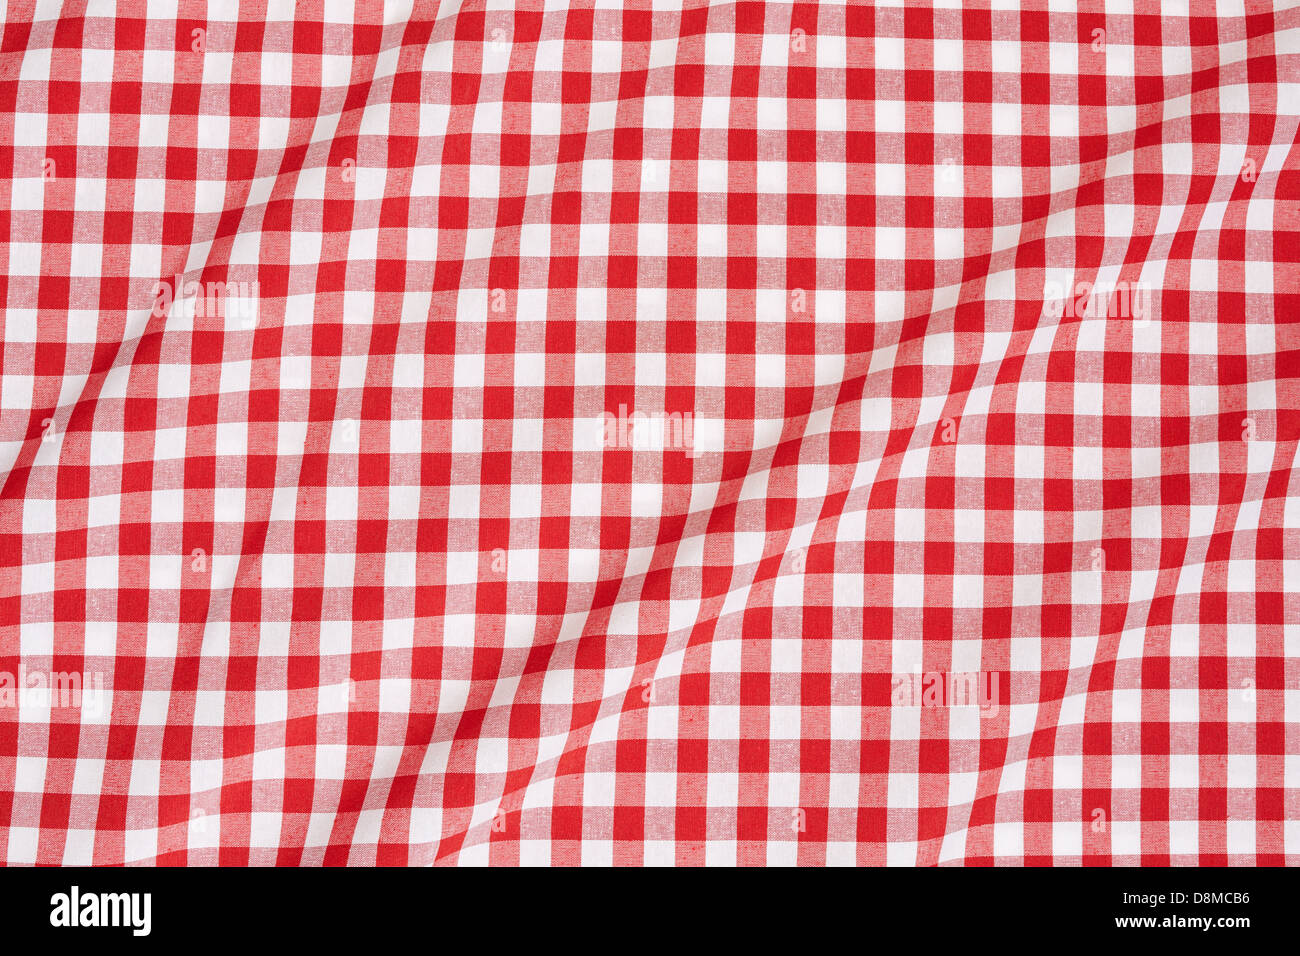 Red and white wavy gingham tablecloth texture background - Stock Image